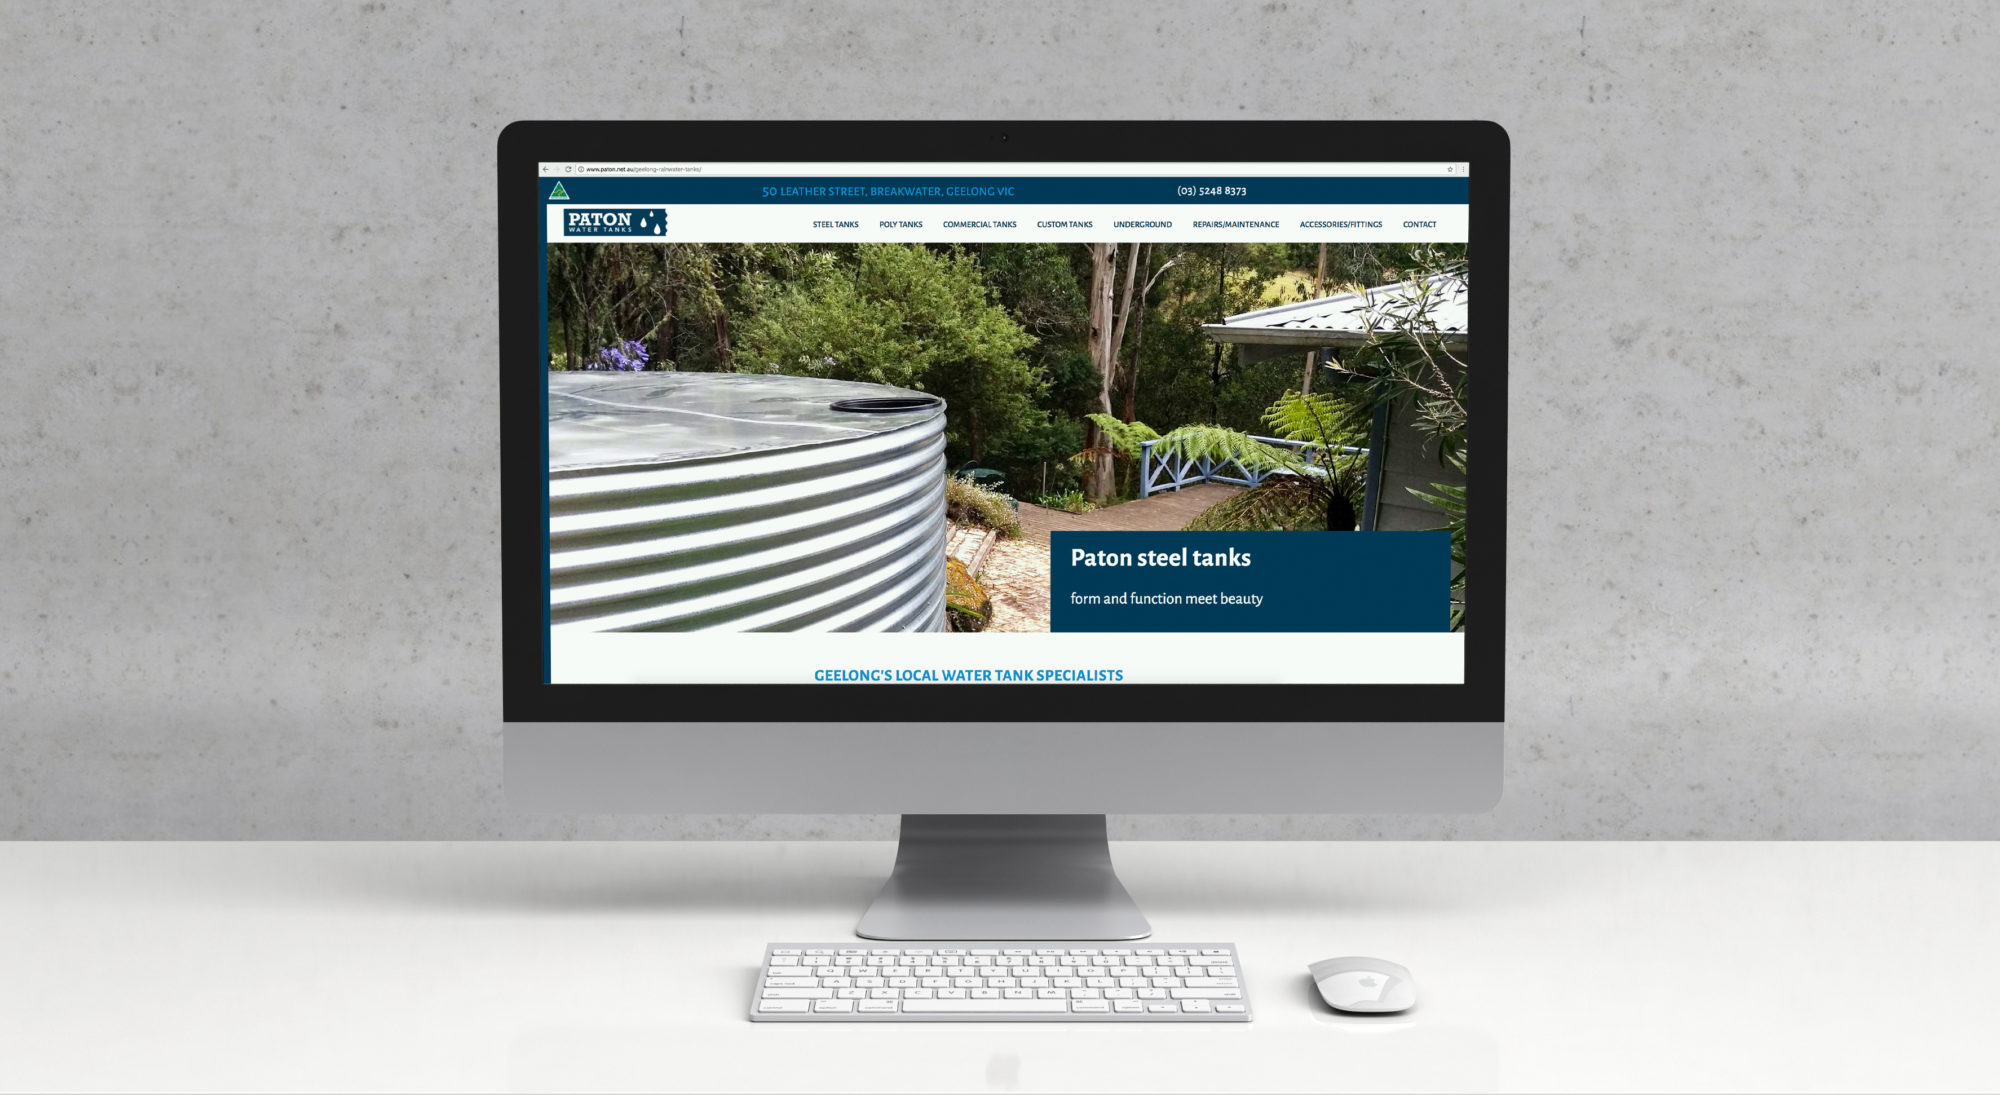 Paton water tanks website home page